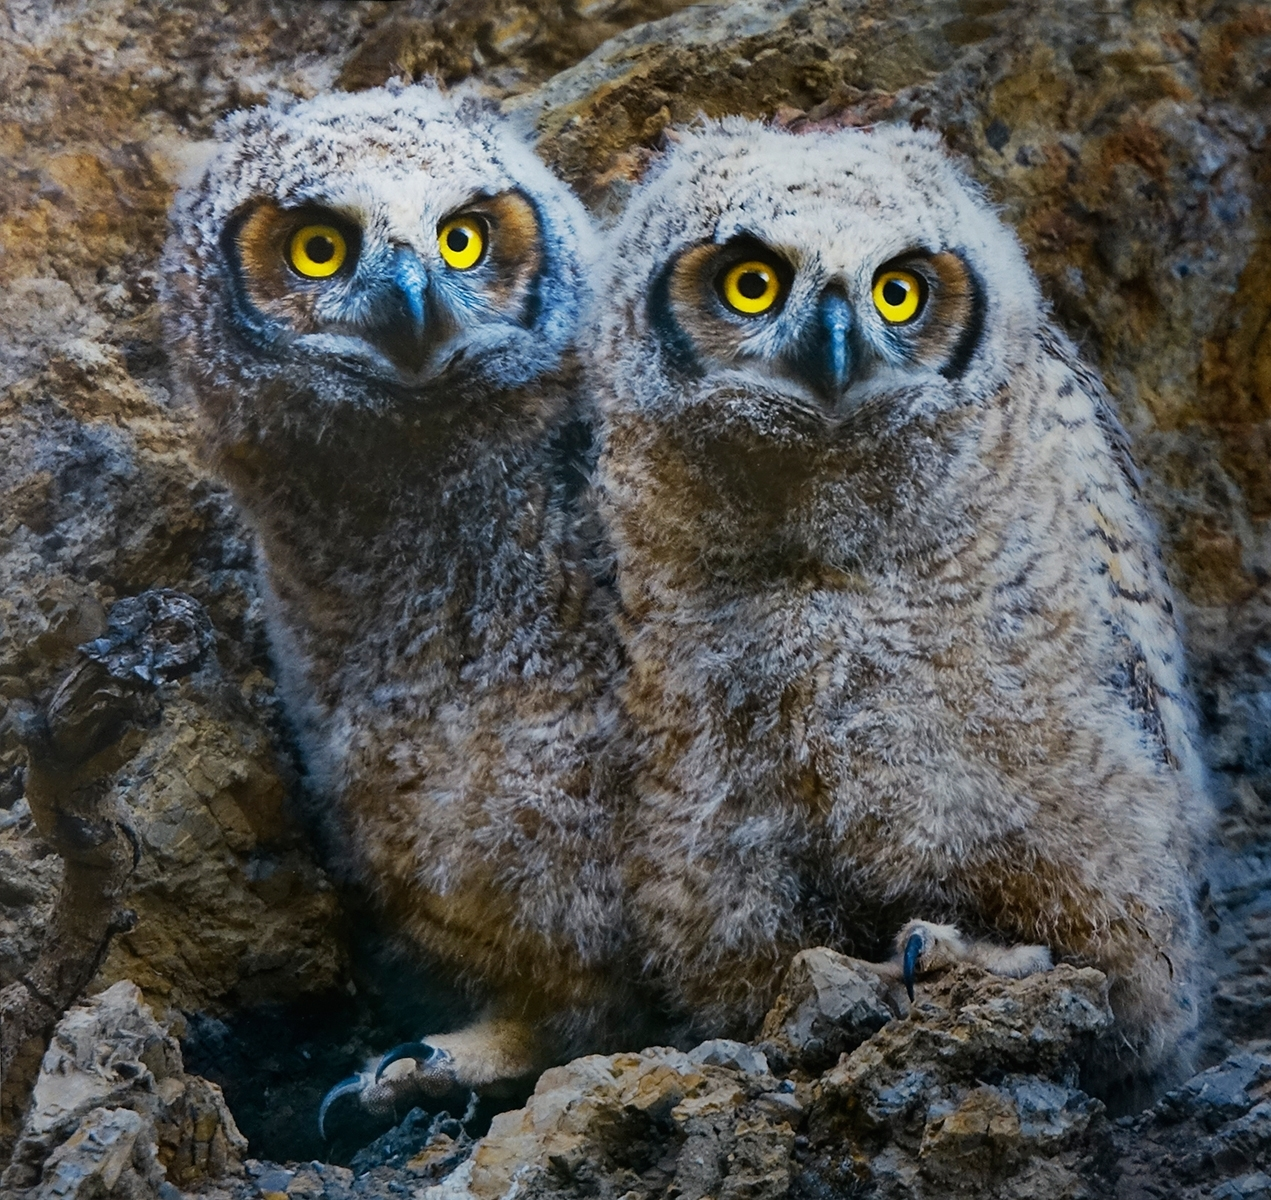 'Two Very Young Great Horned Owls on Watch for Moms Return' (NA 1 Place) by Claudia Peterson - LS